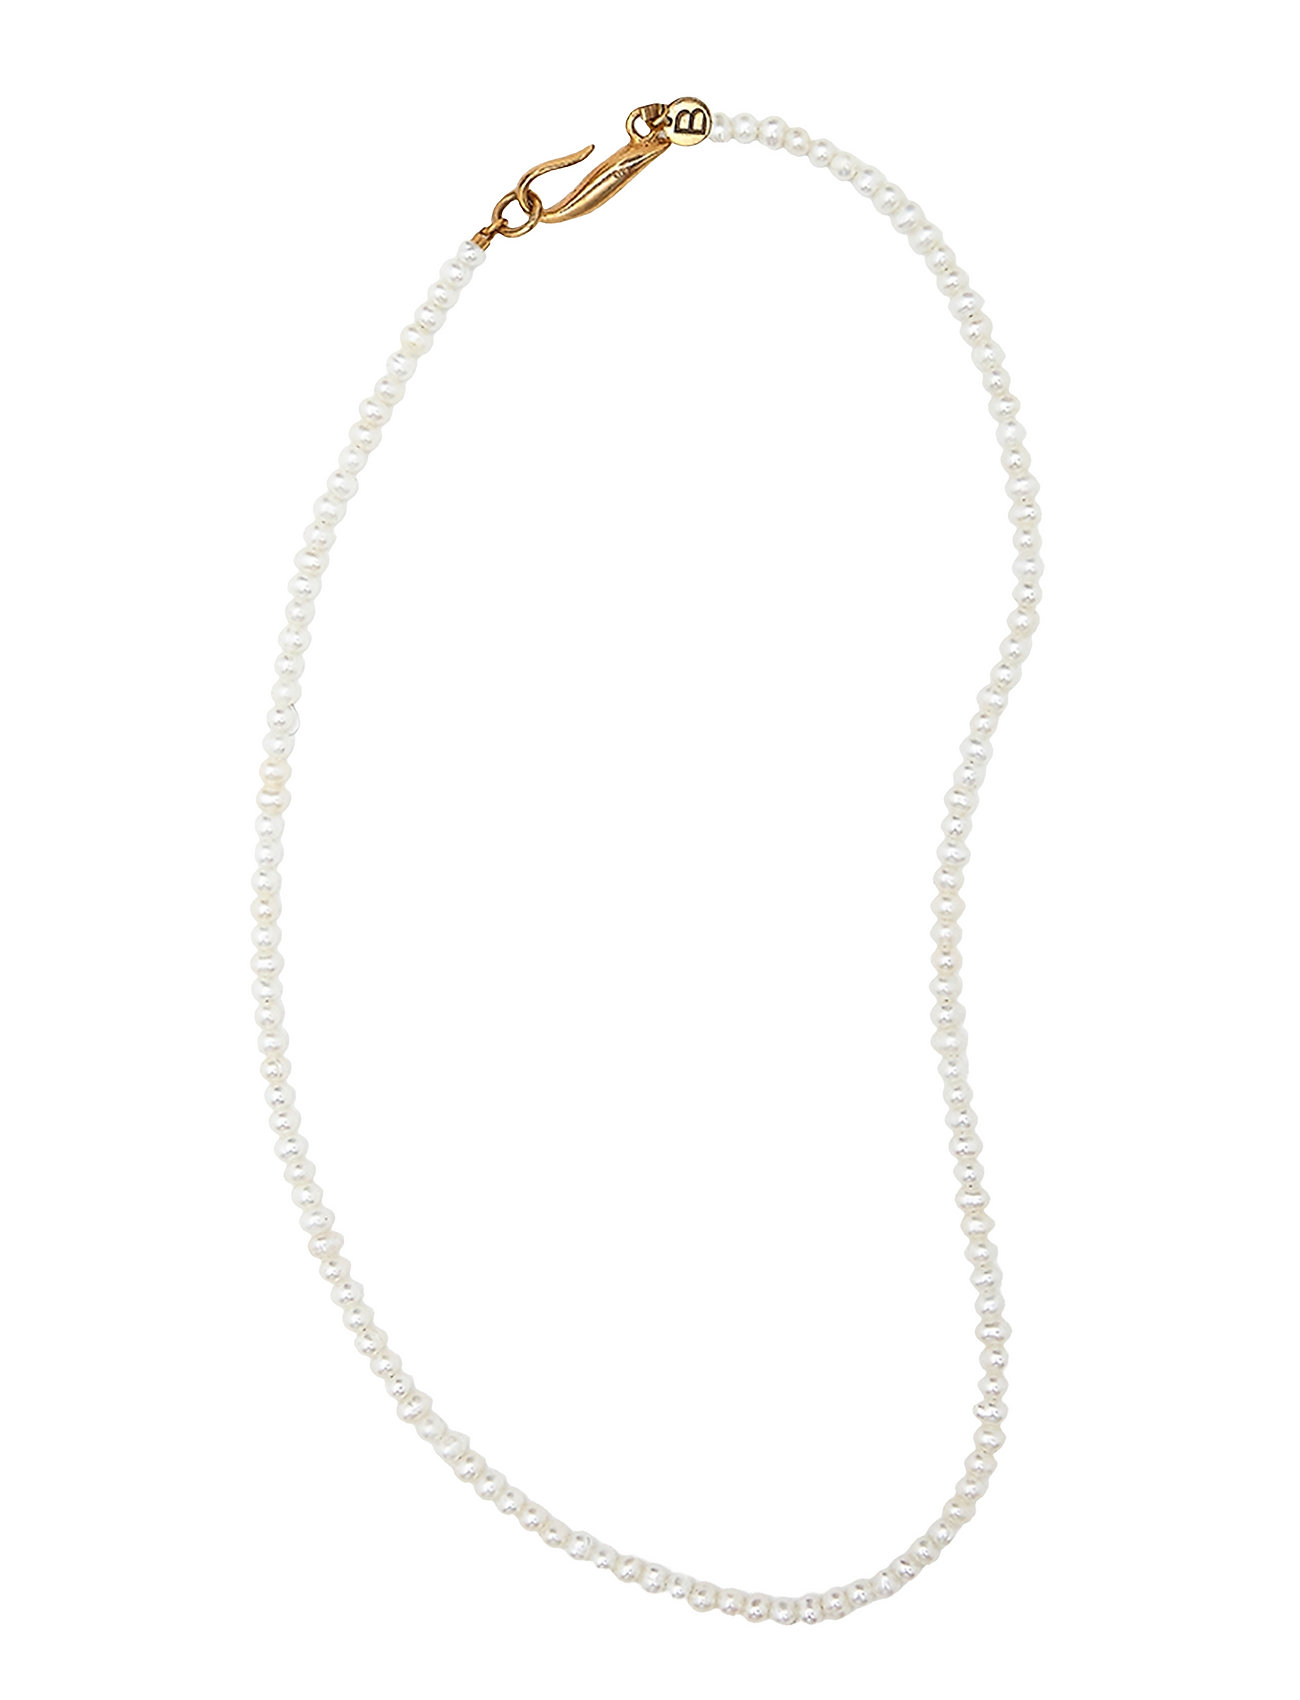 Thin Pearl Necklace Accessories Jewellery Necklaces Dainty Necklaces Guld Blue Billie